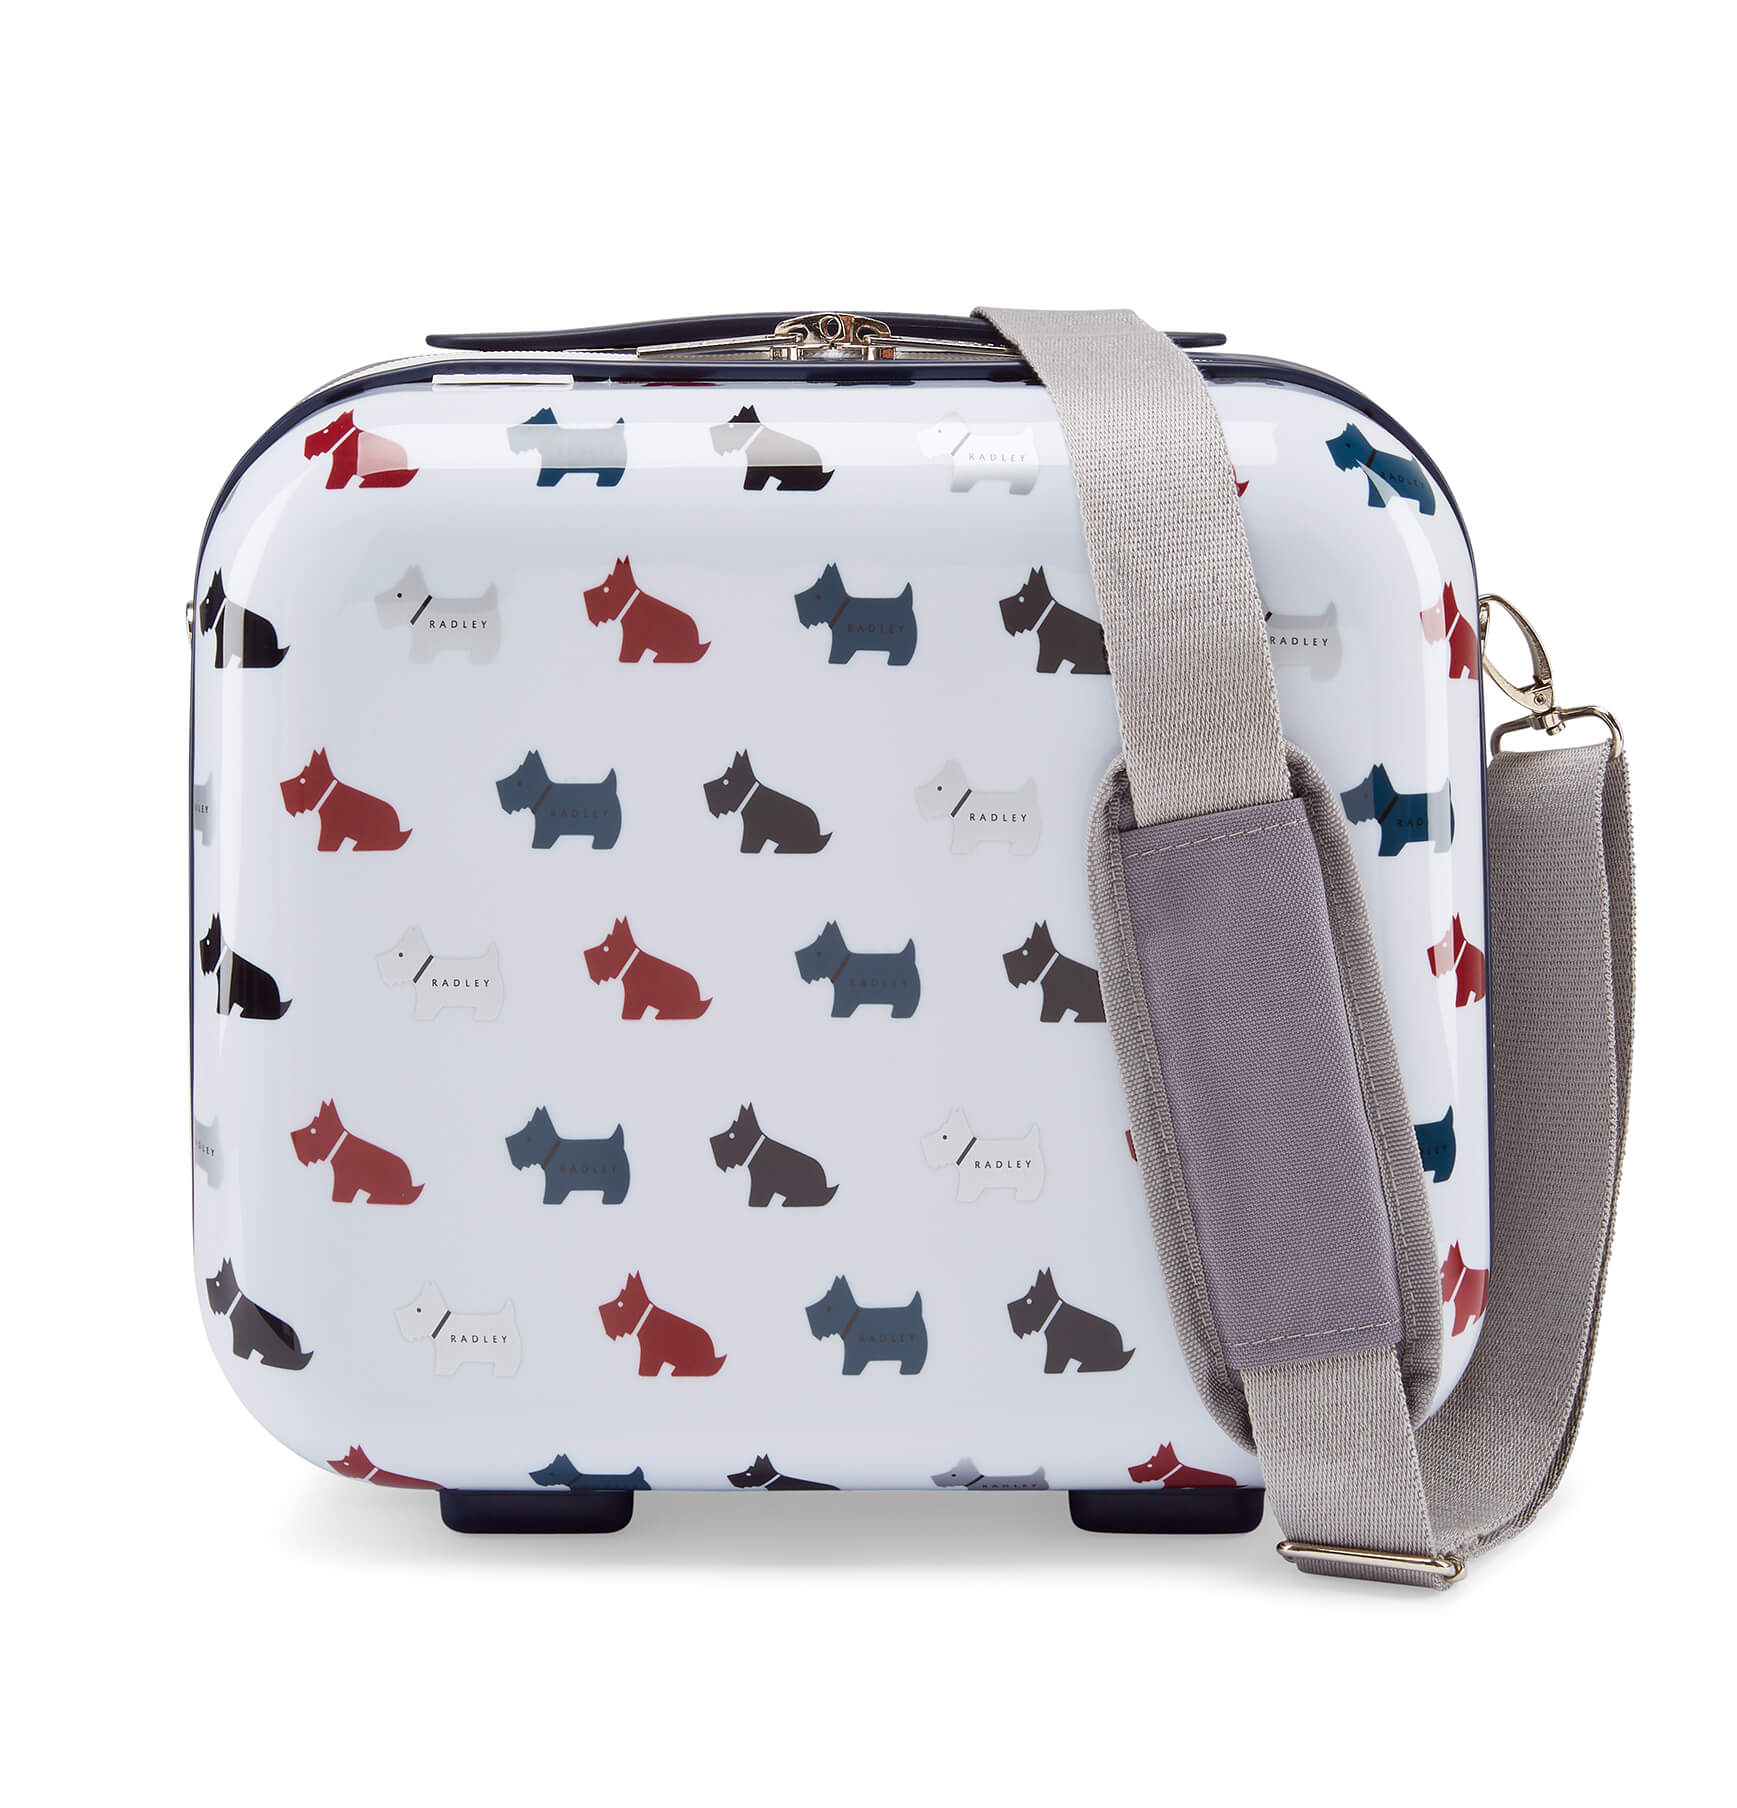 Radley Multi-Dog Vanity Case